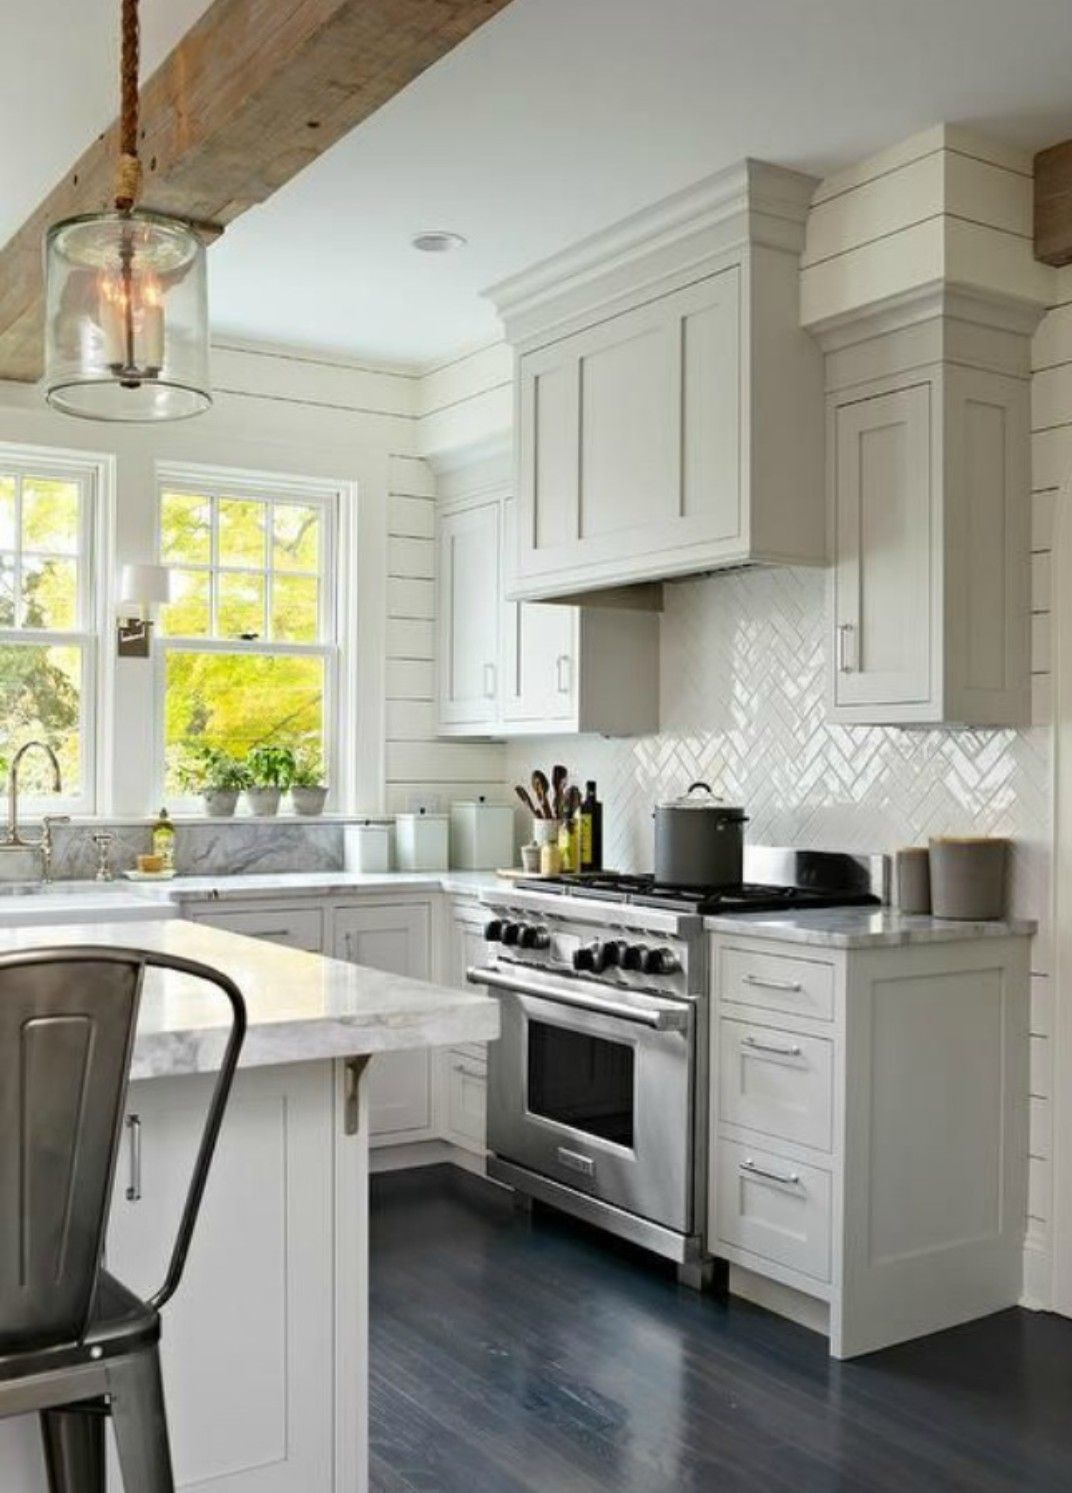 Boxing In Top Of Cabinets To The Ceiling Kitchen Remodel Small Farmhouse Kitchen Design Kitchen Design